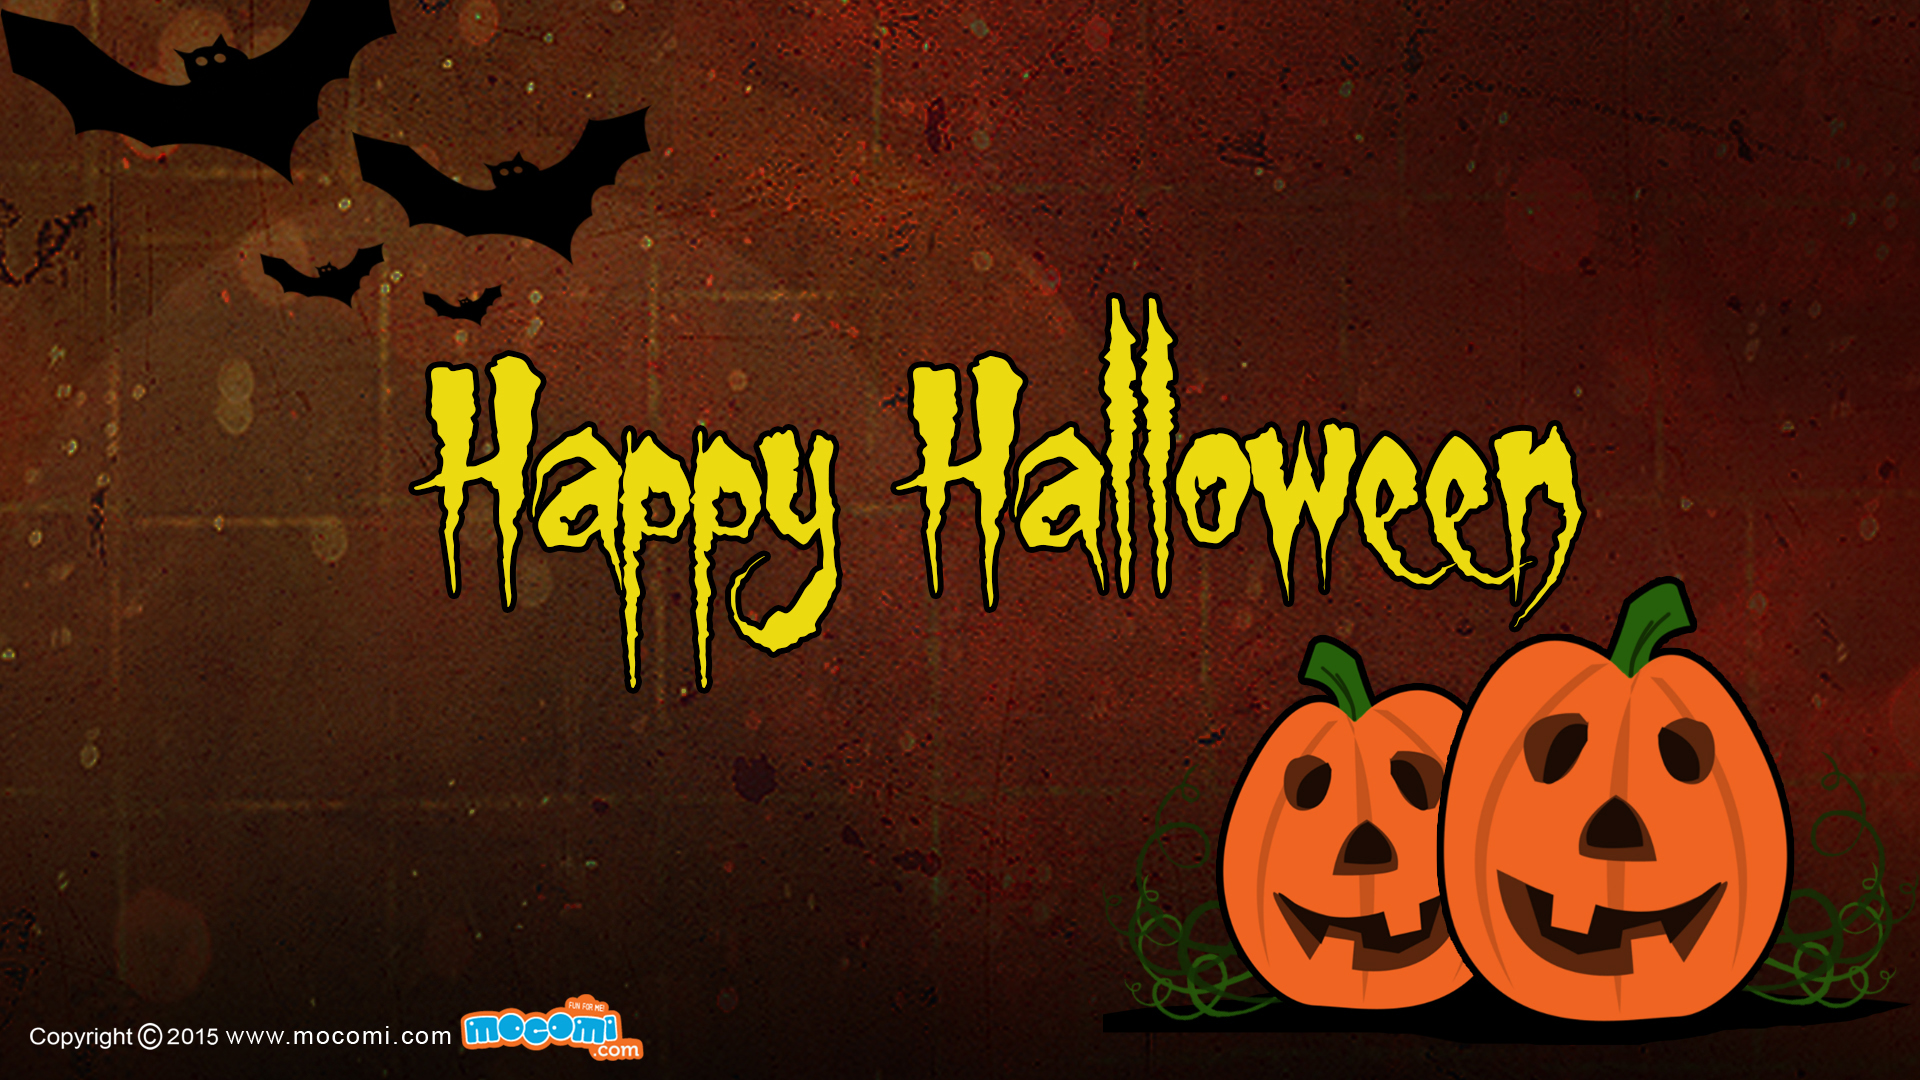 Happy Halloween Wallpaper – 02